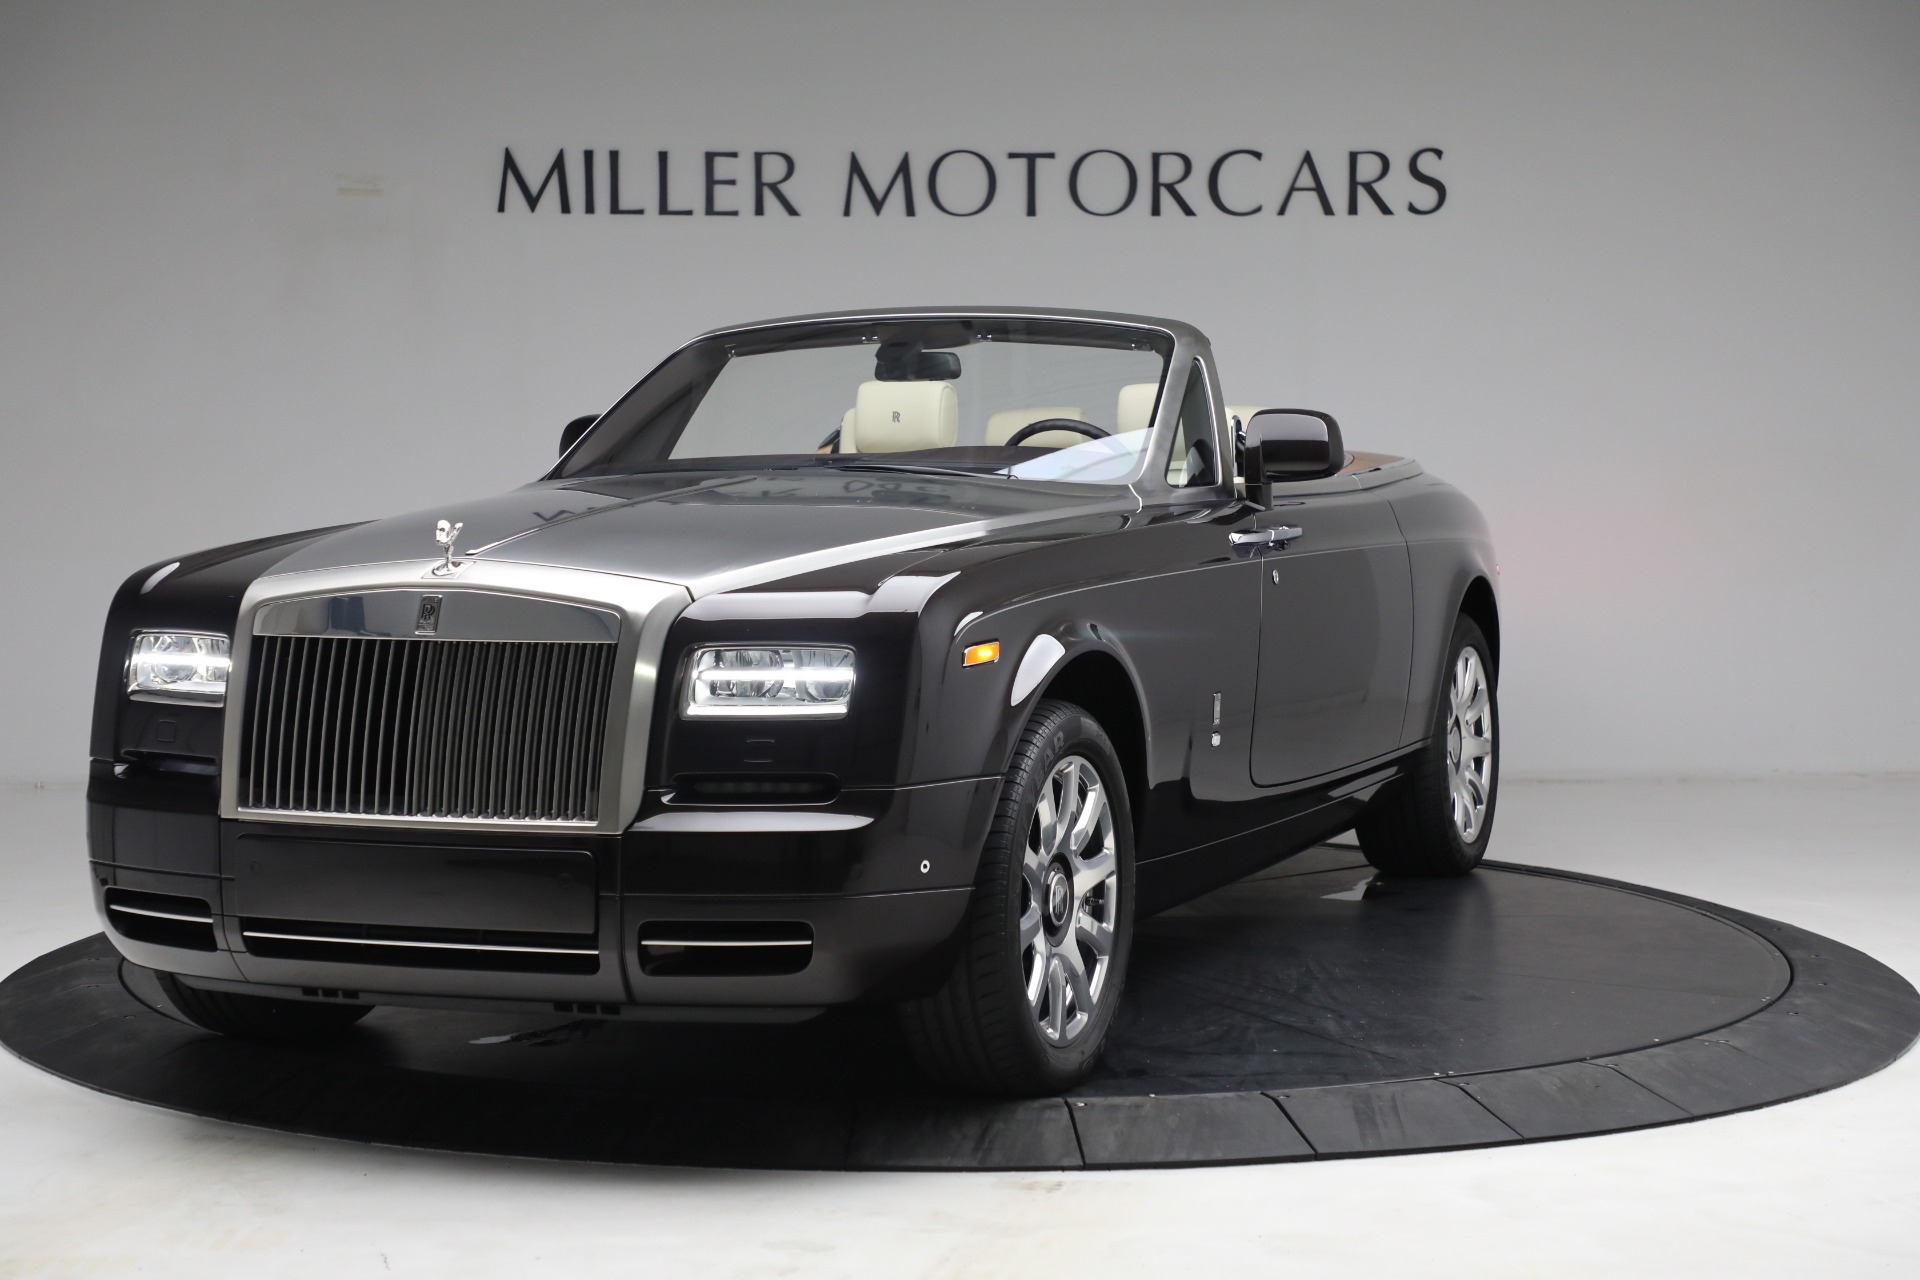 Used 2015 Rolls-Royce Phantom Drophead Coupe for sale Call for price at Maserati of Westport in Westport CT 06880 1